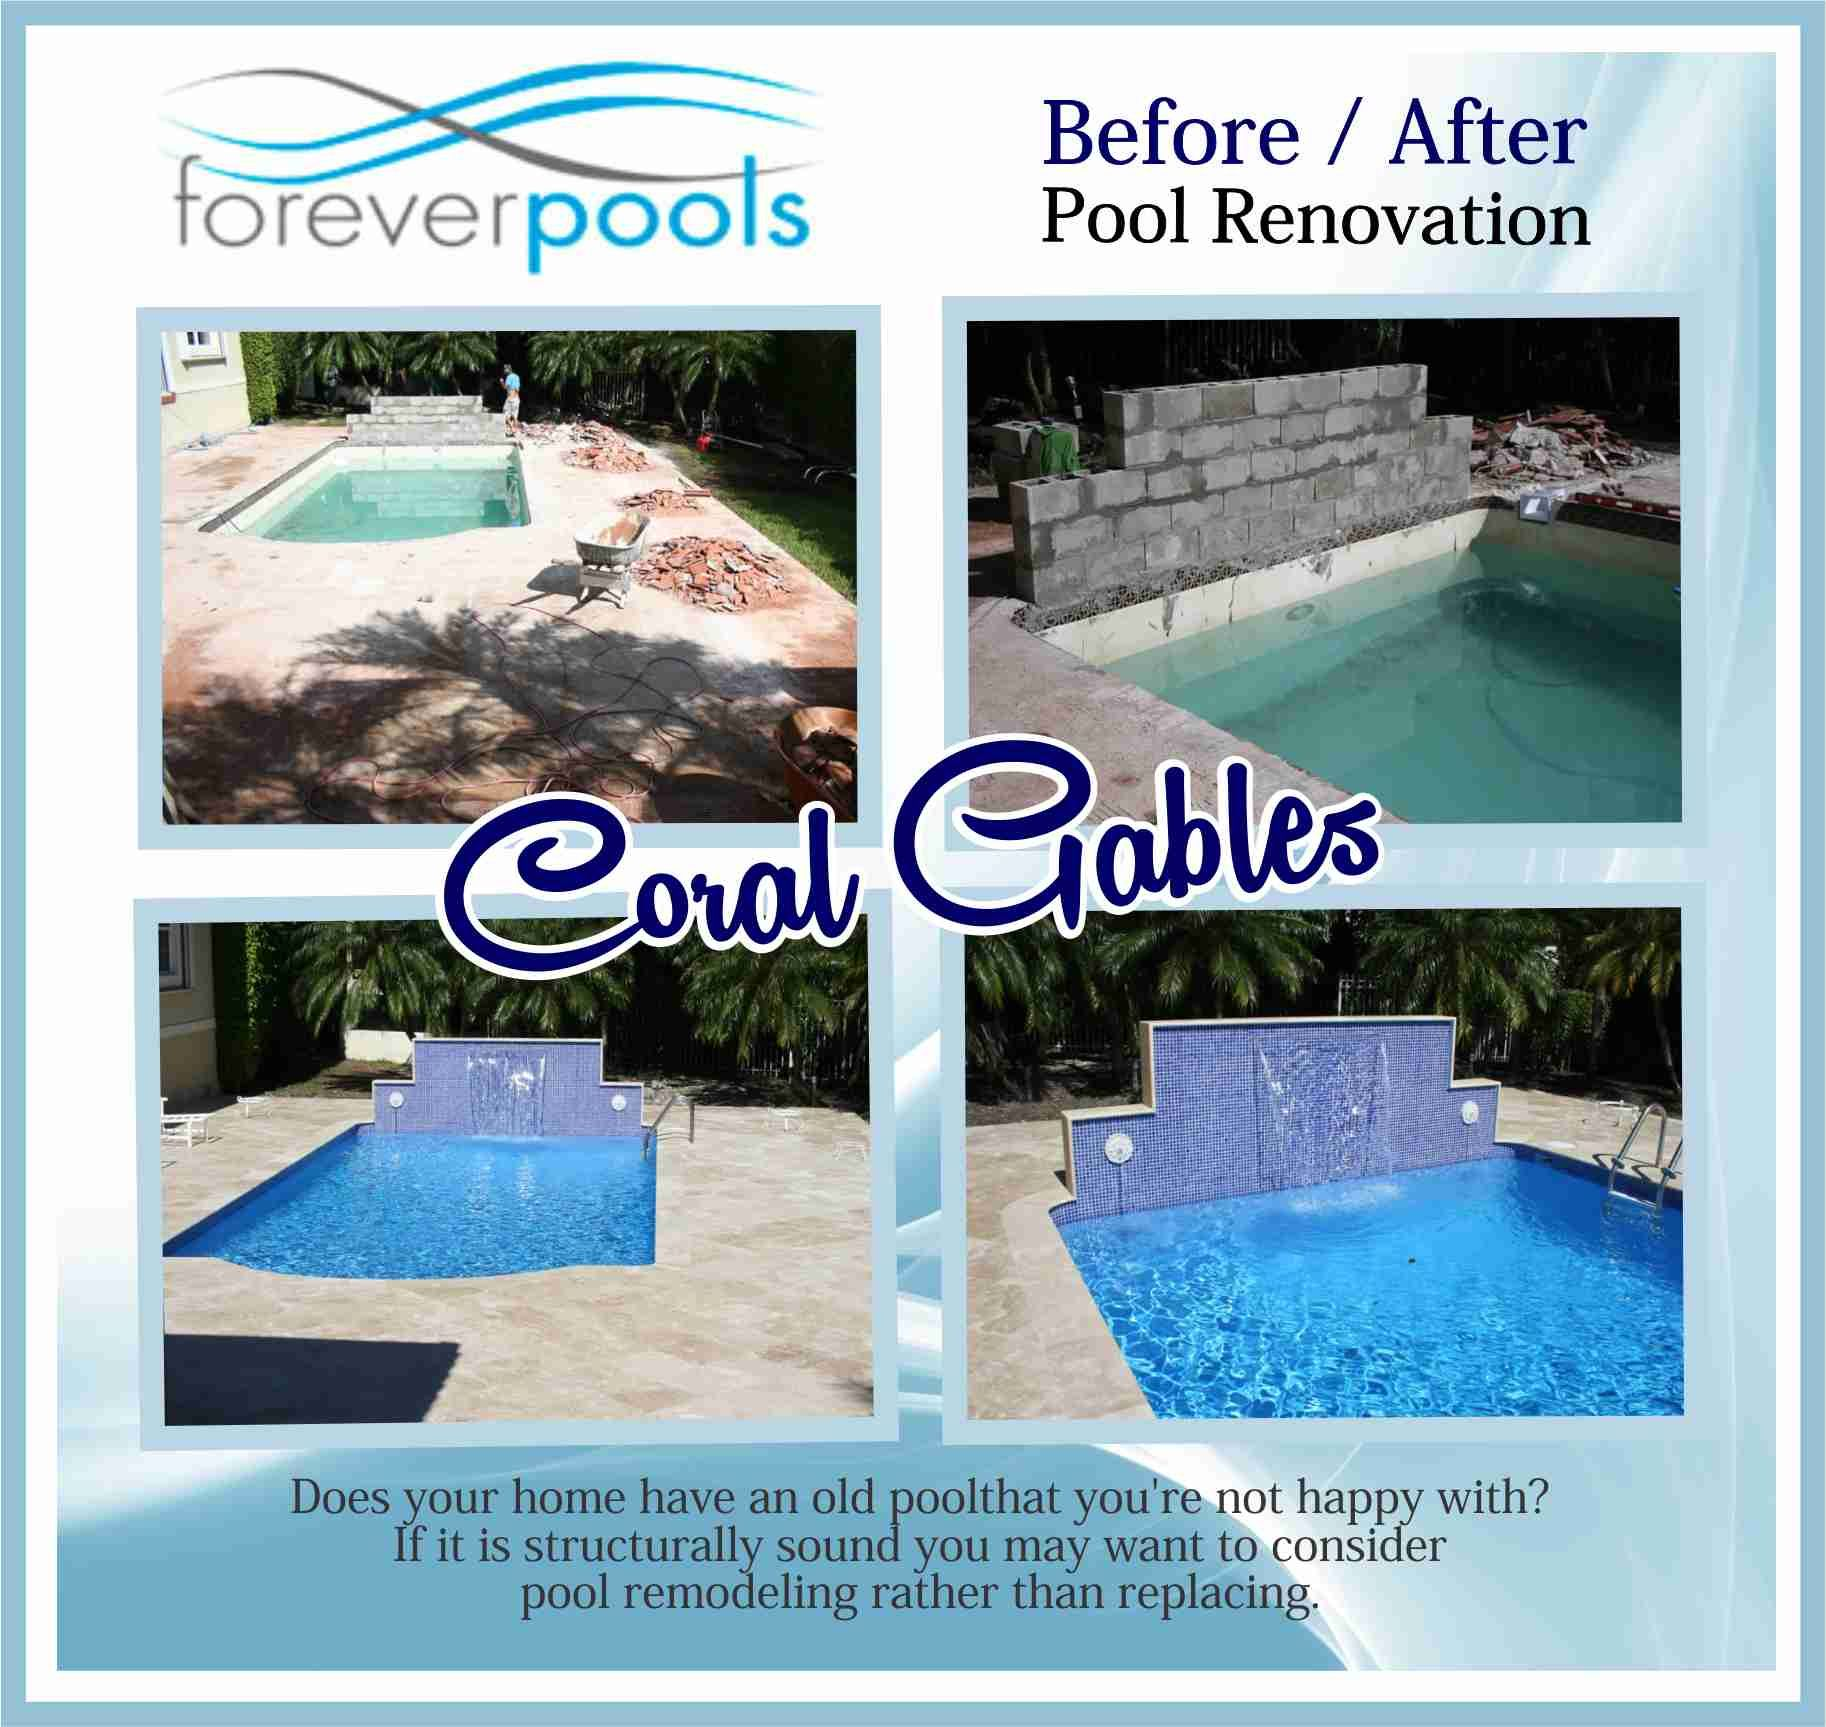 Coral Gables Pool Remodeling Does Your Home Have An Old Pool That You Re Not Happy With If It Is Structurally Sound You May Pool Remodel Pool Renovation Pool